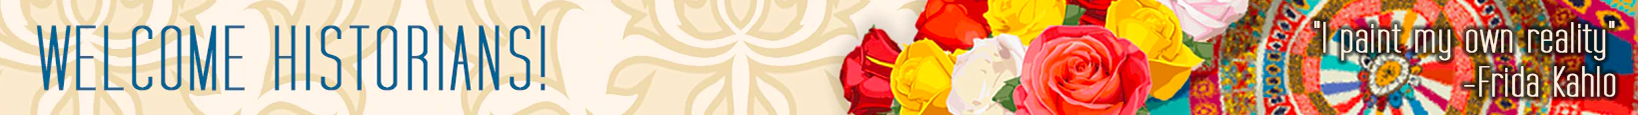 nhb-category-banner.png